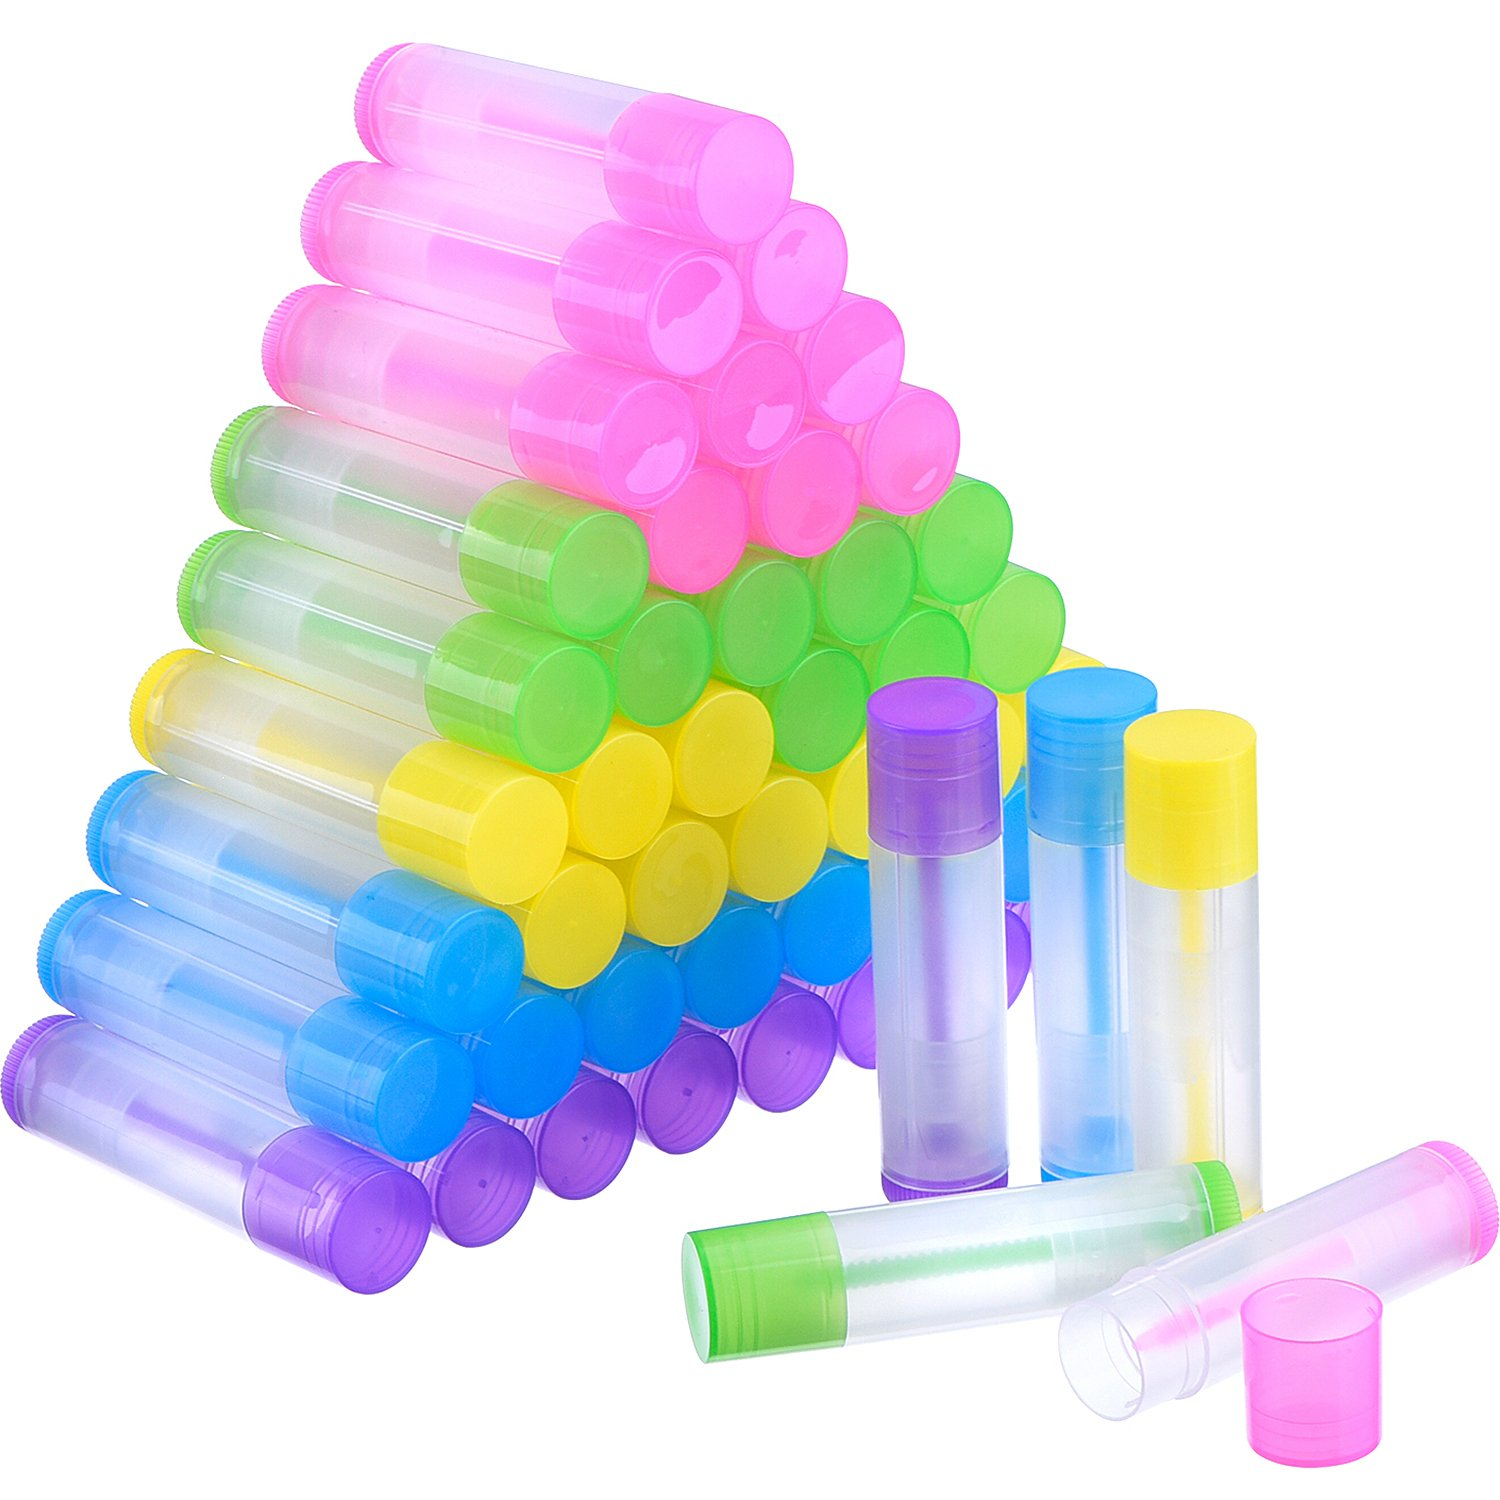 eBoot 50 Pieces Lip Balm Empty Container Clear Tubes with Twist Bottom and Top Cap, 3 16 Oz 5.5 ml Multicolor